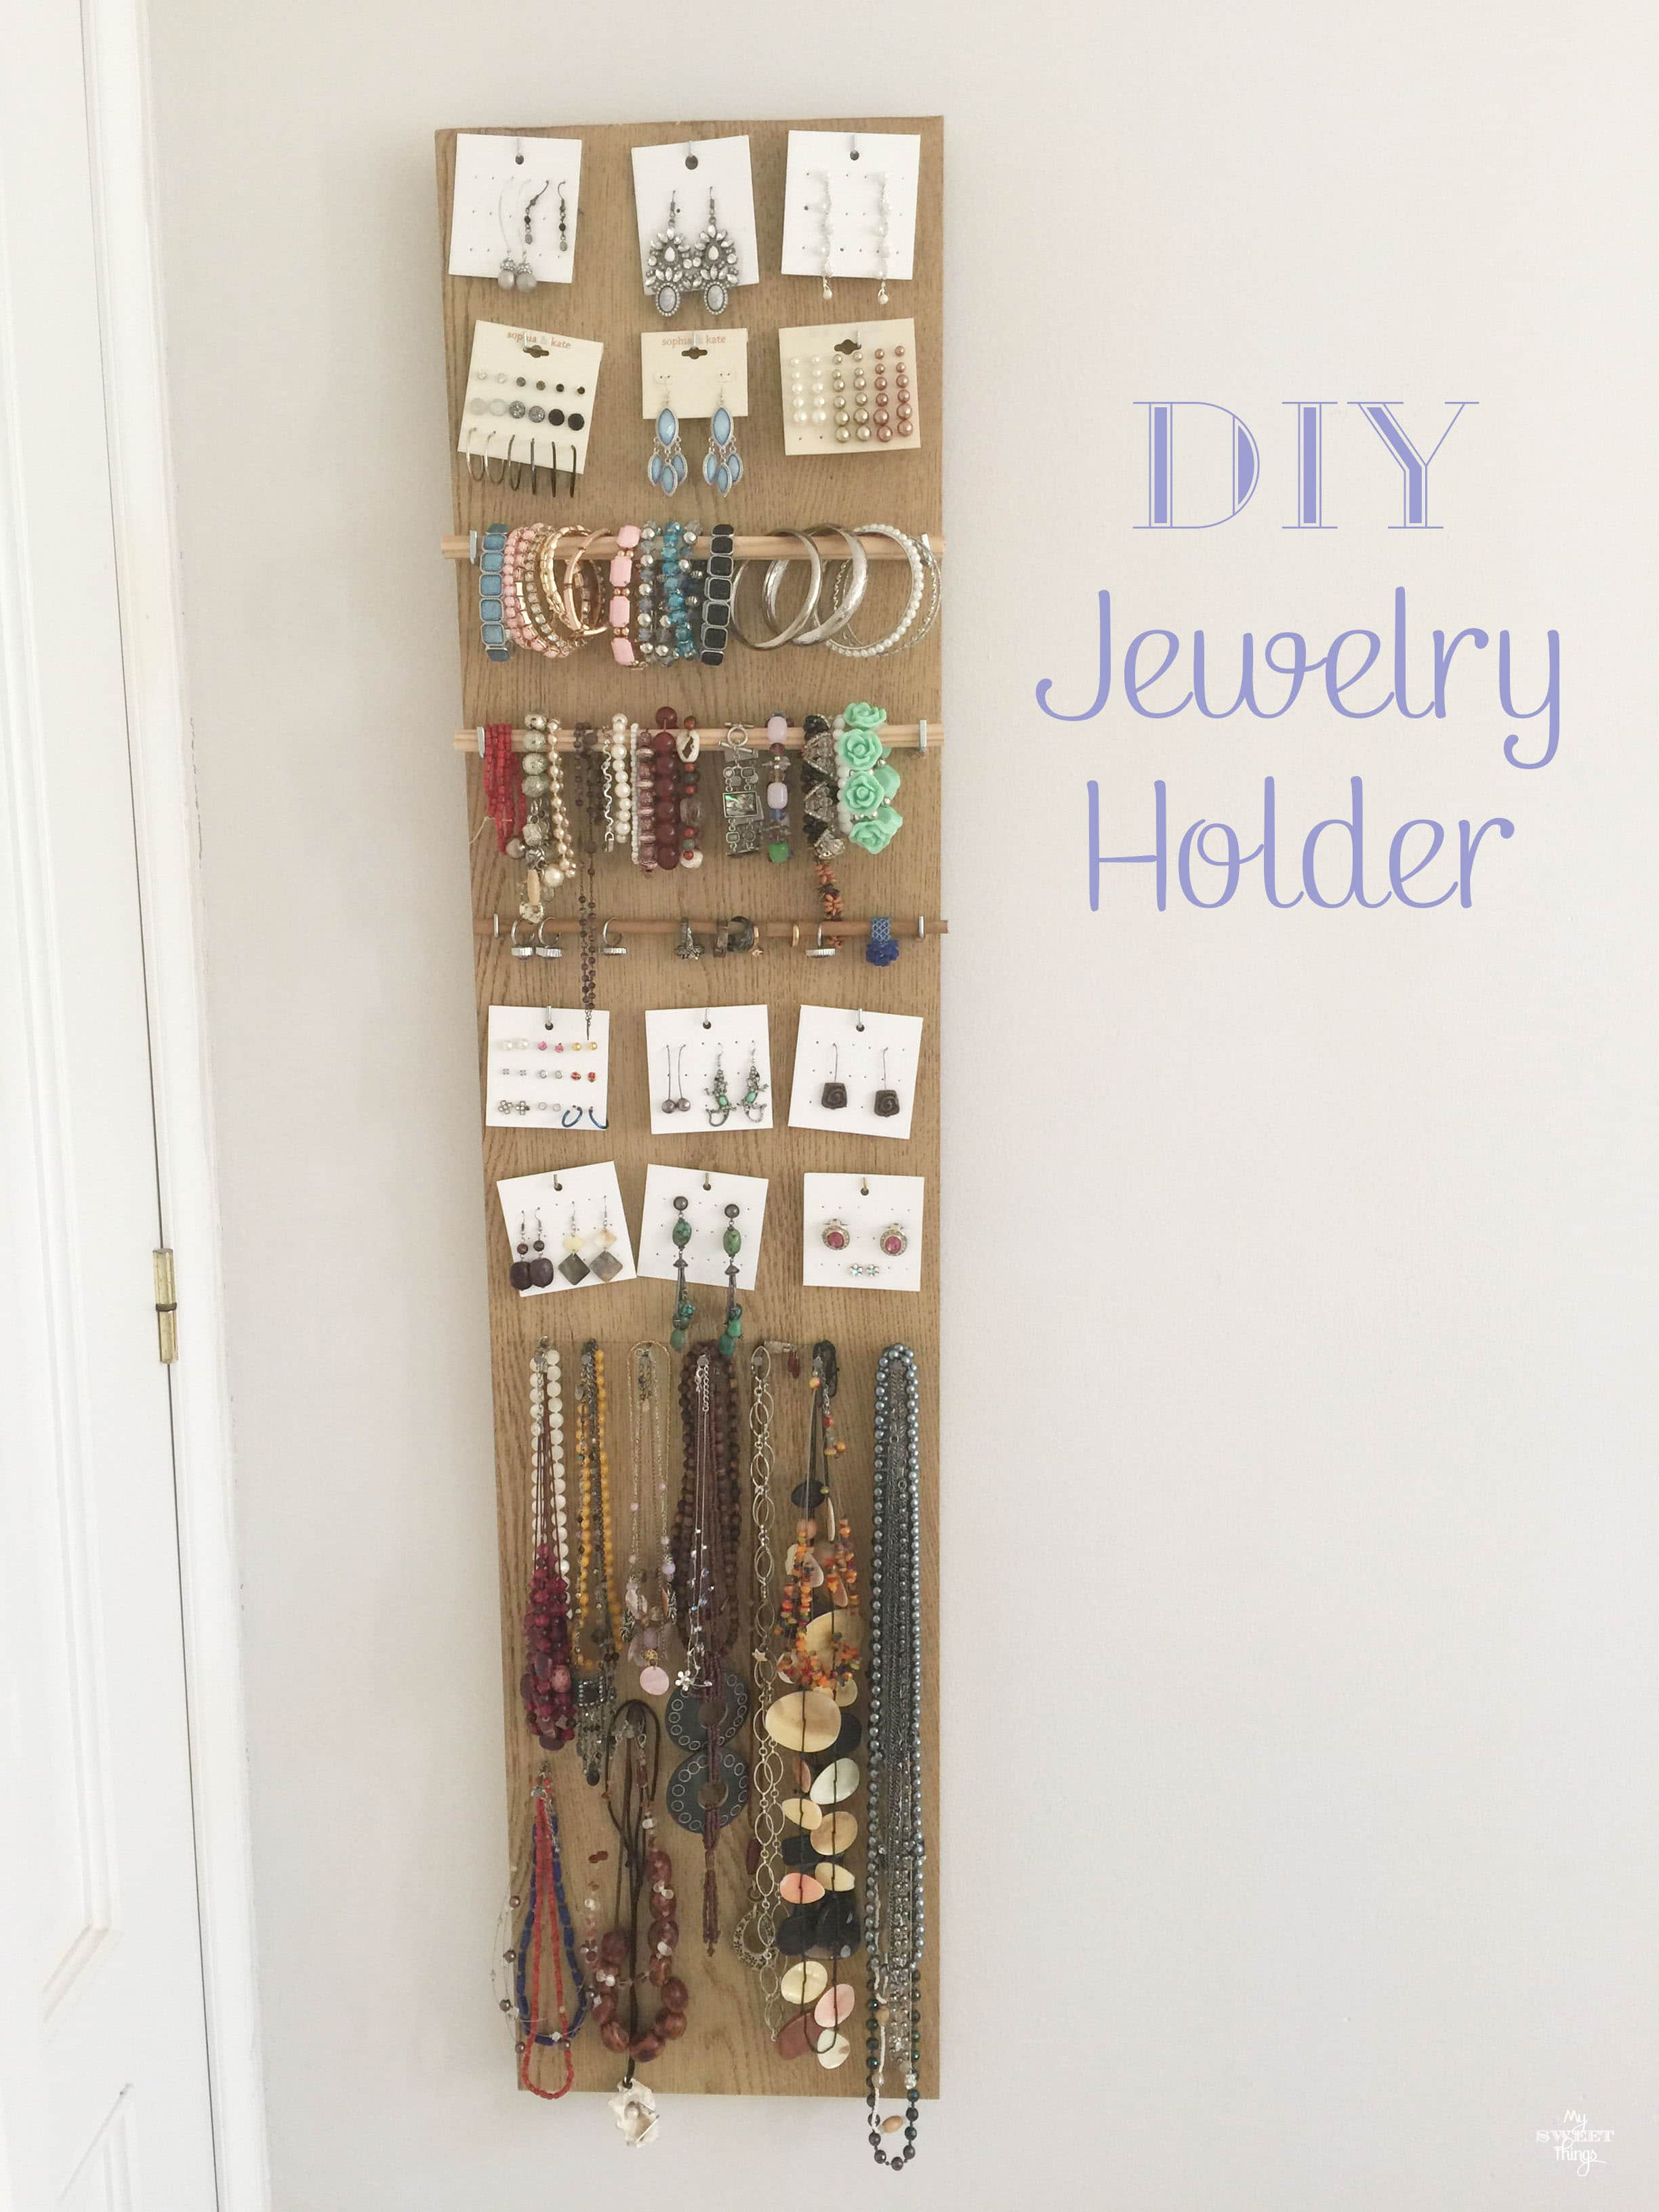 Awesome Diy Jewelry Holder Part - 10: Easy And Quick DIY Jewelry Holder Out Of Scrap Wood · Via Www.sweethings.